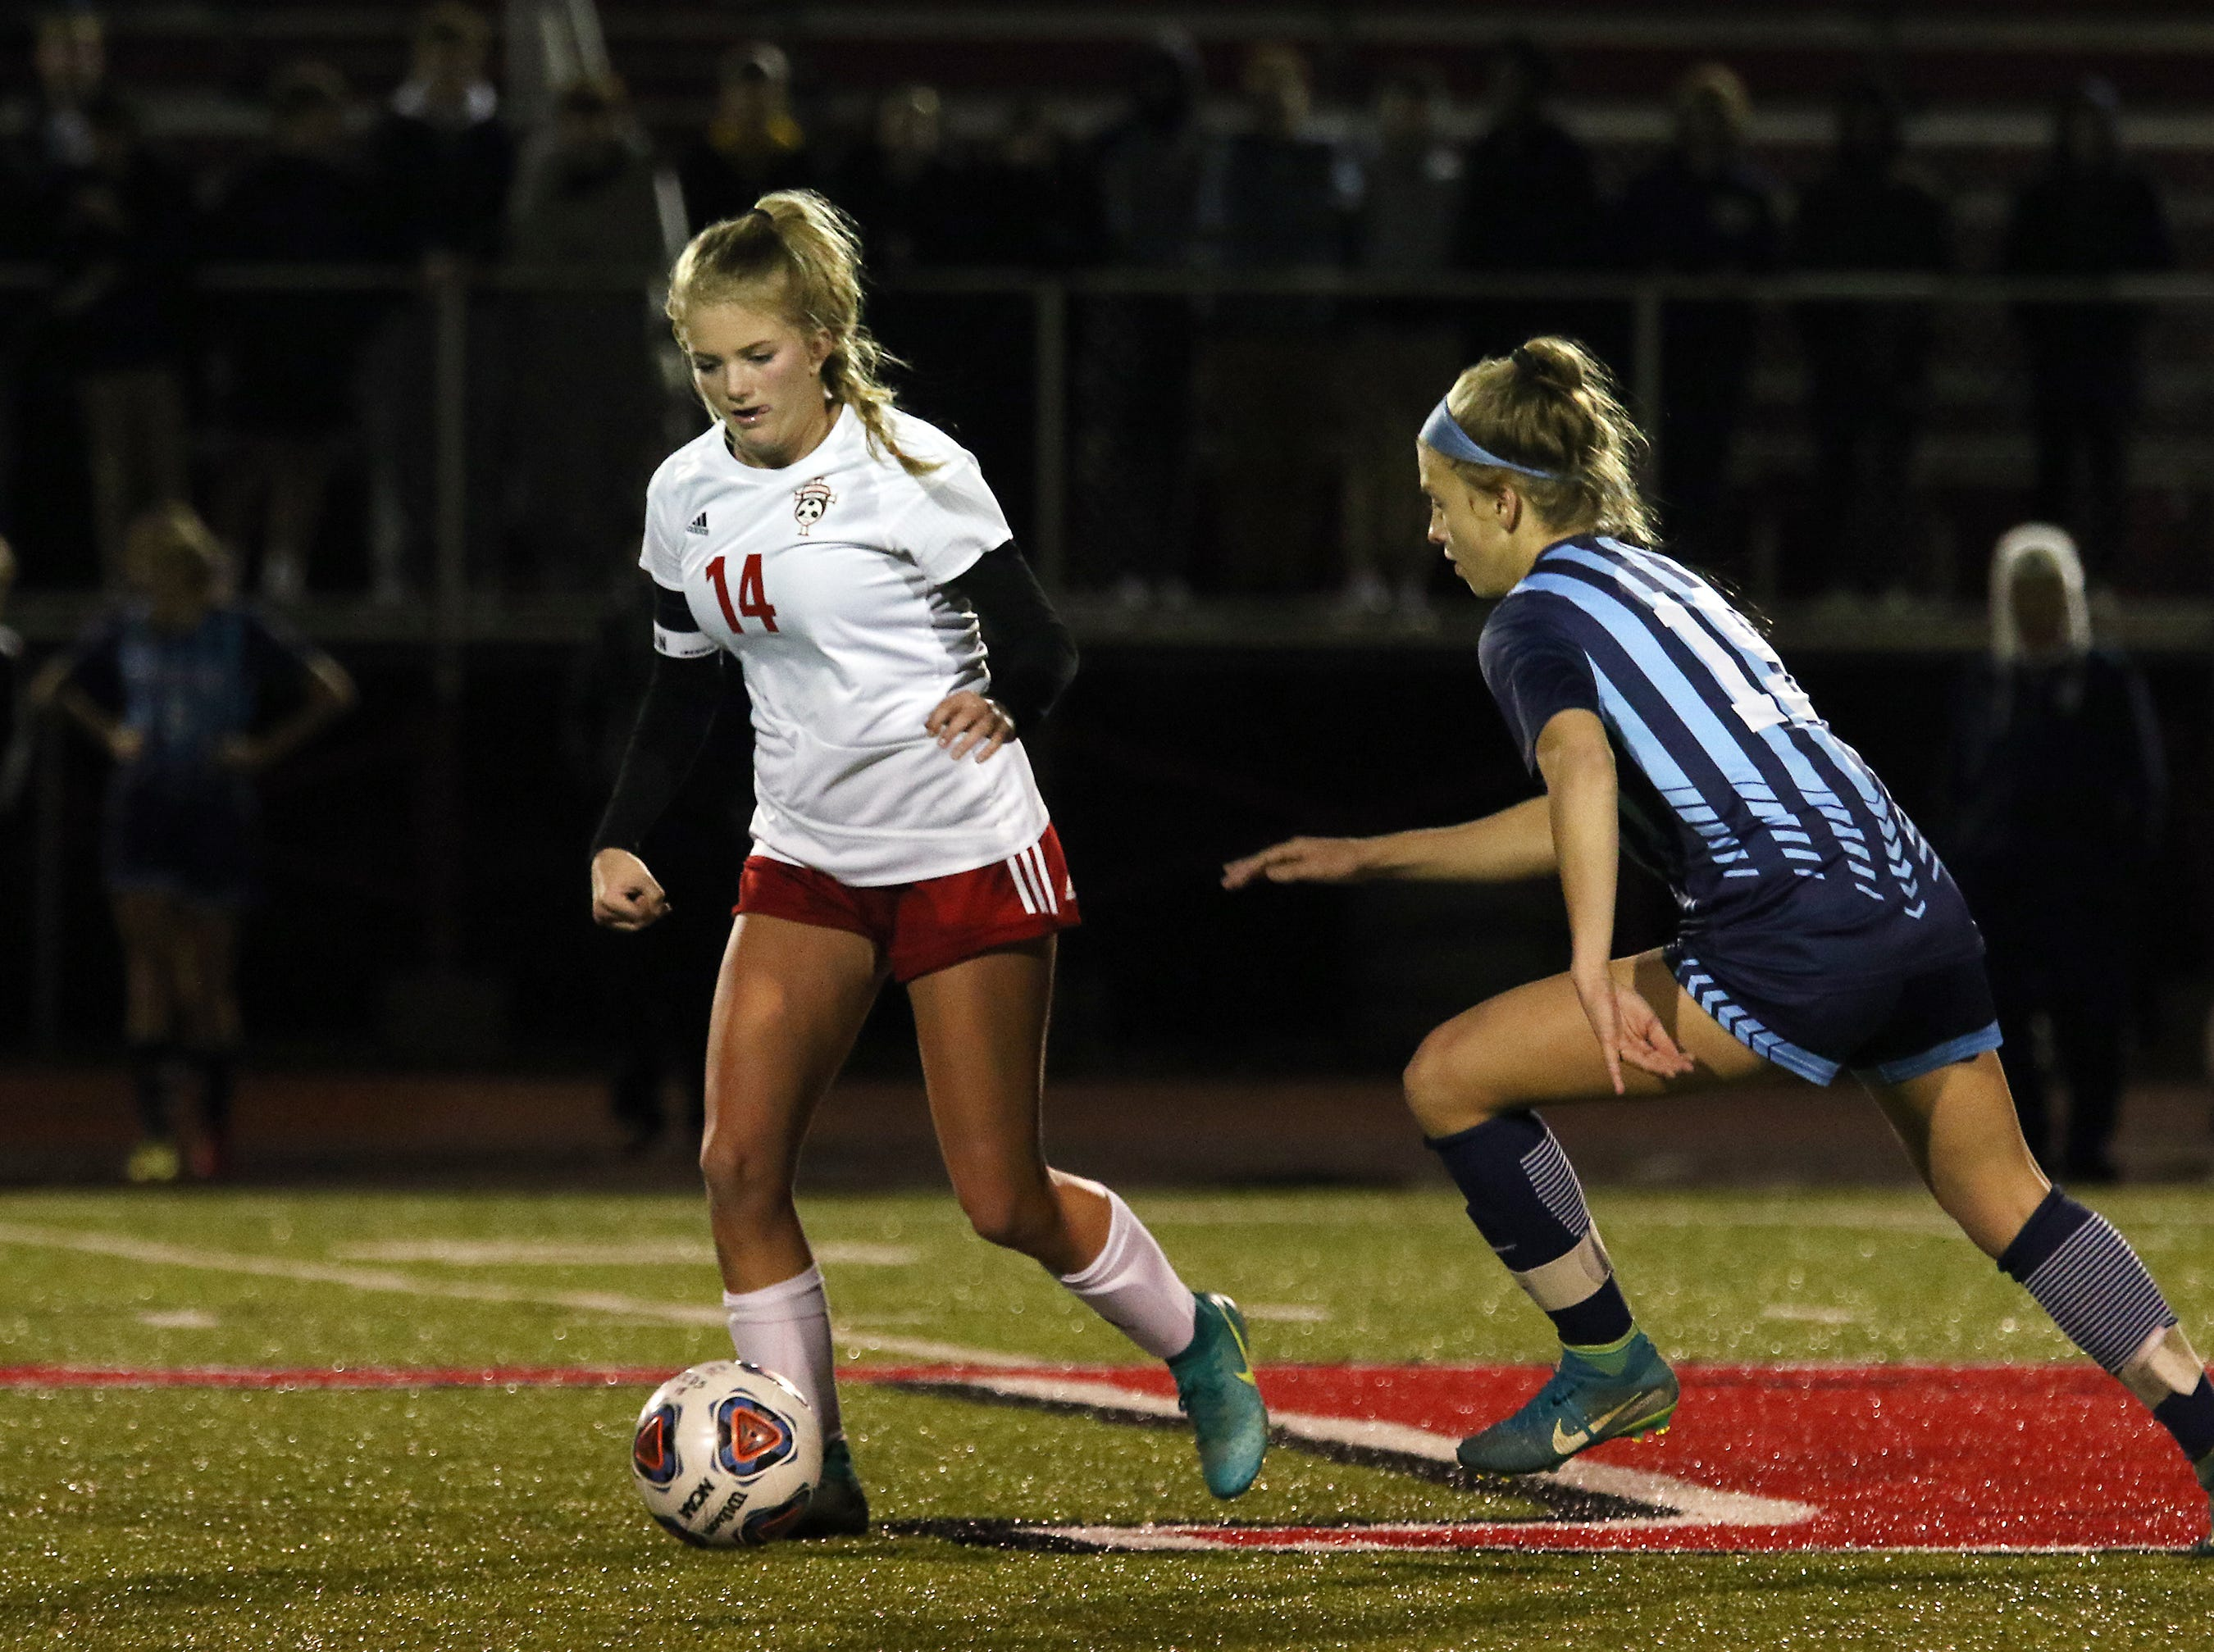 Rosecrans' Emma Zemba moves with the ball against CCD in the Division III state semifinals at London High School on Tuesday.